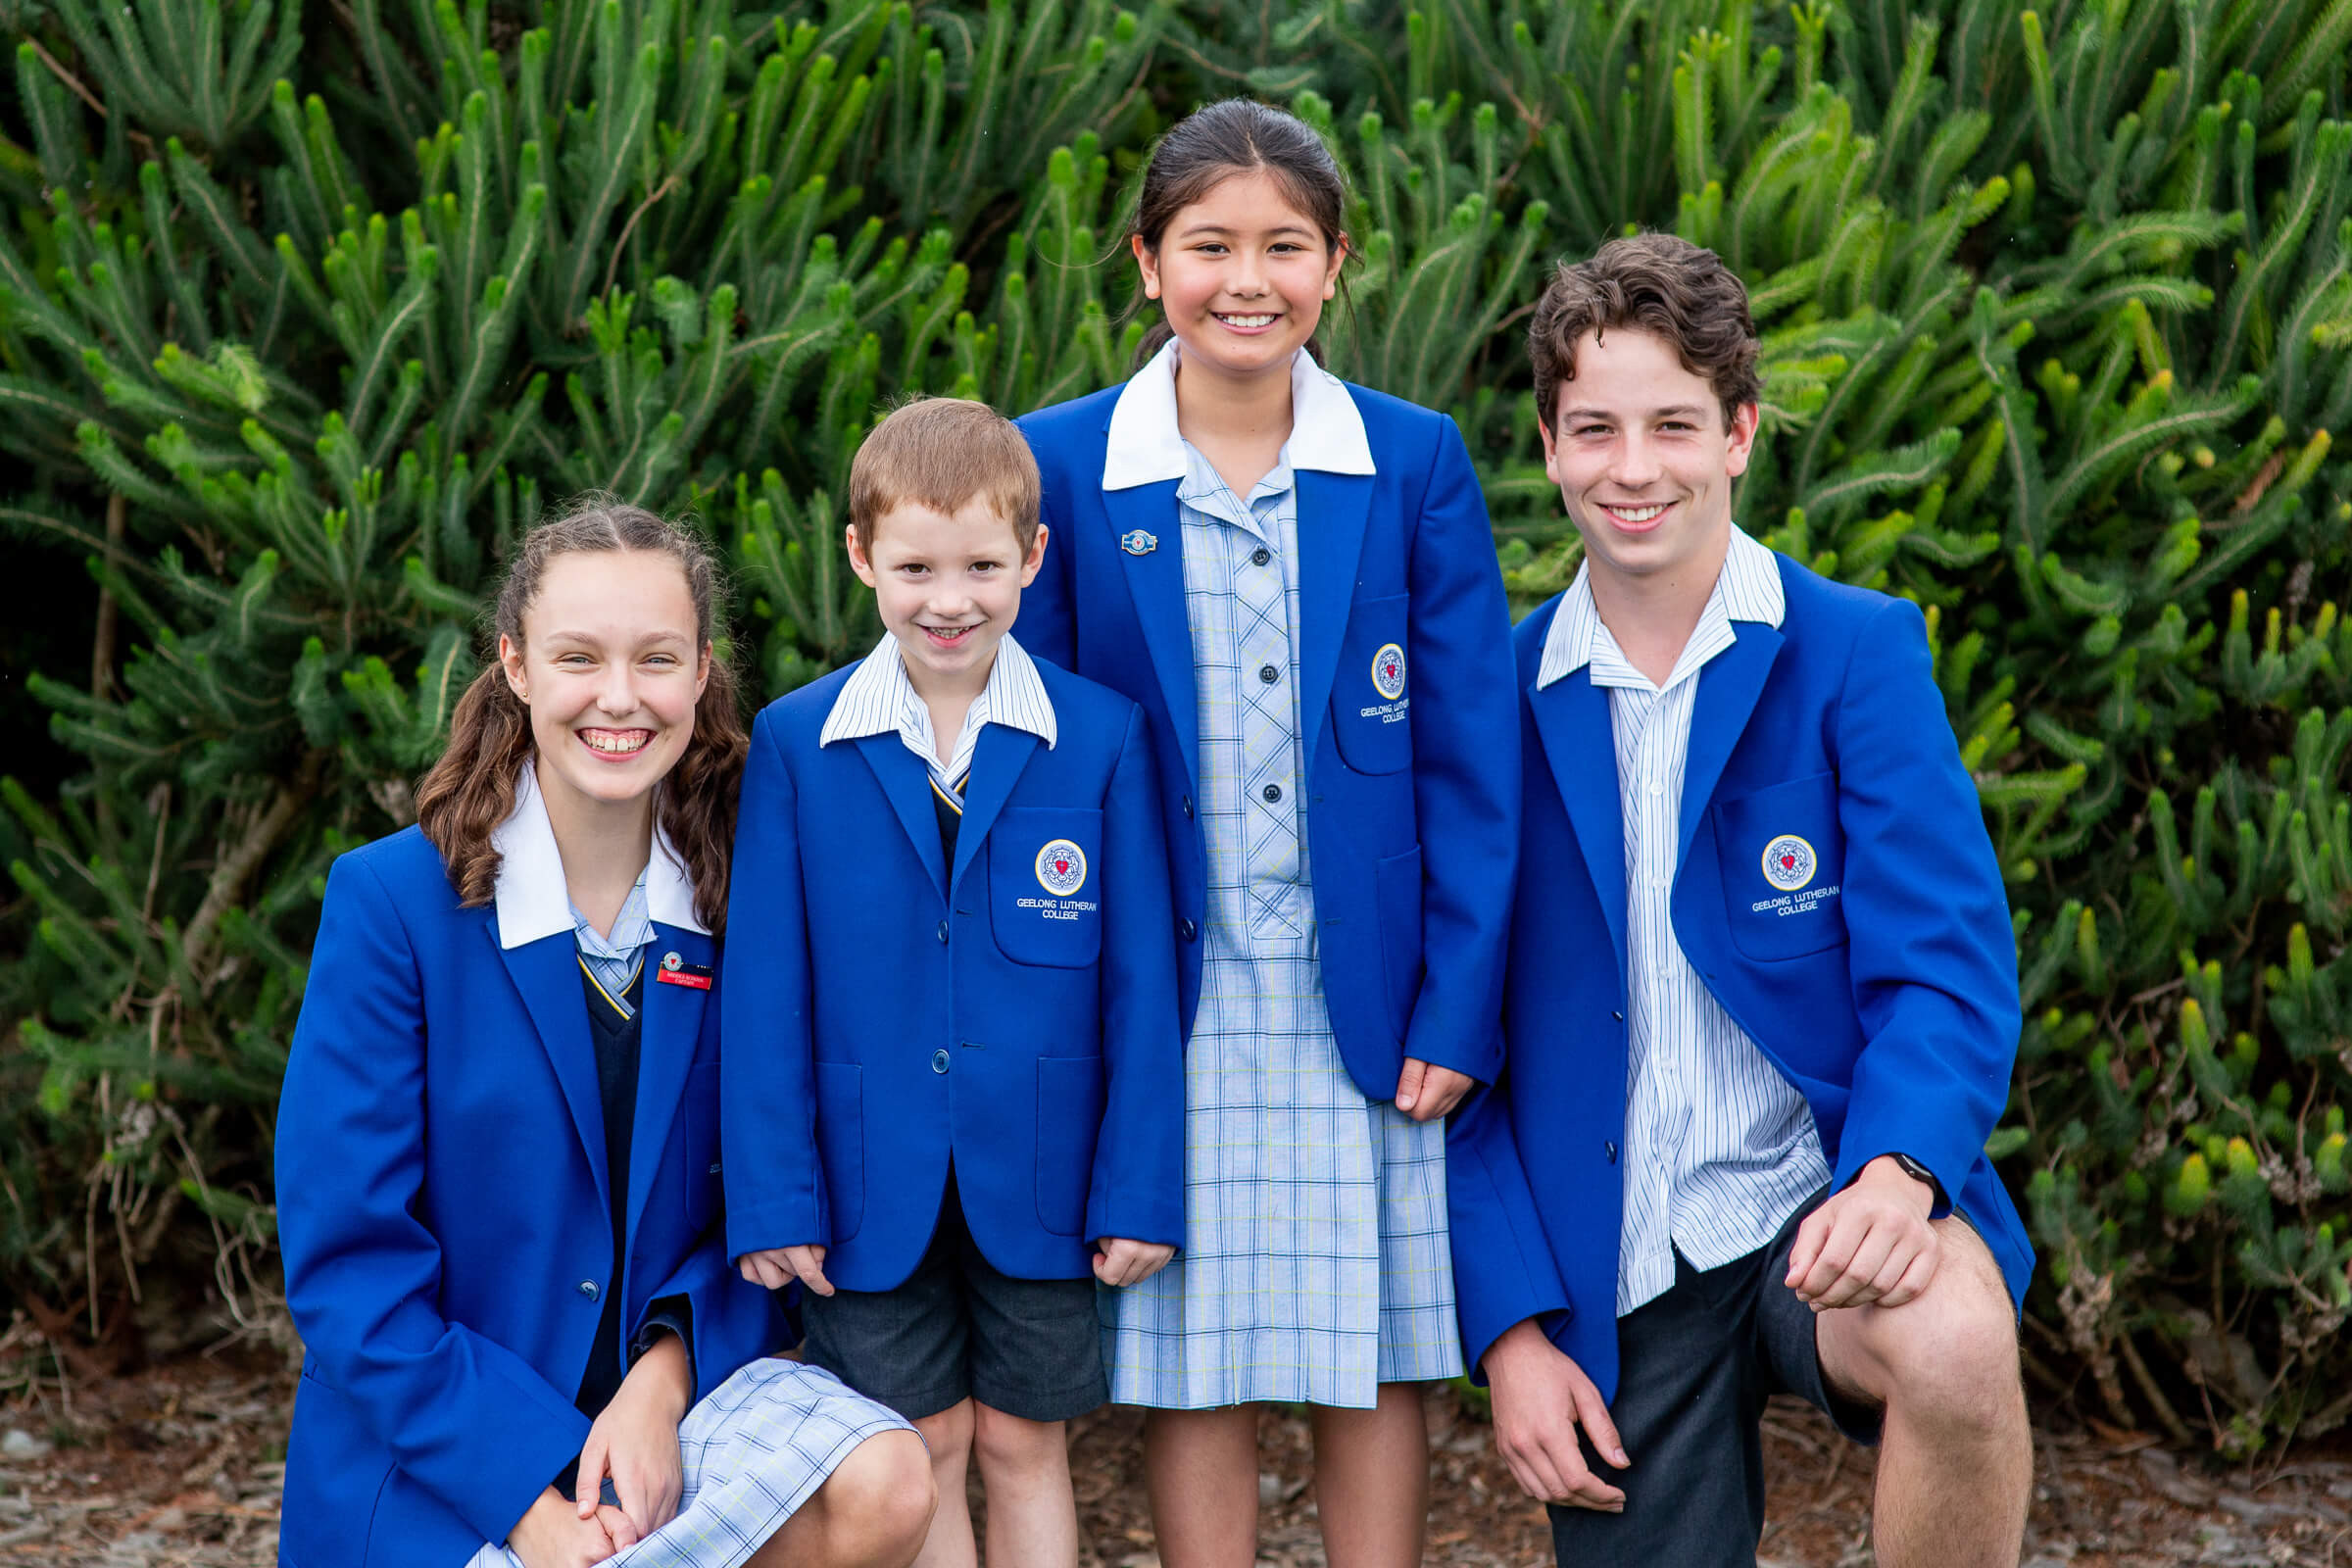 Ac A Message From The Wellbeing Team News News Events Geelong Lutheran College St John S Lutheran Kindergarten St John S Newtown Armstrong Creek Form Glc